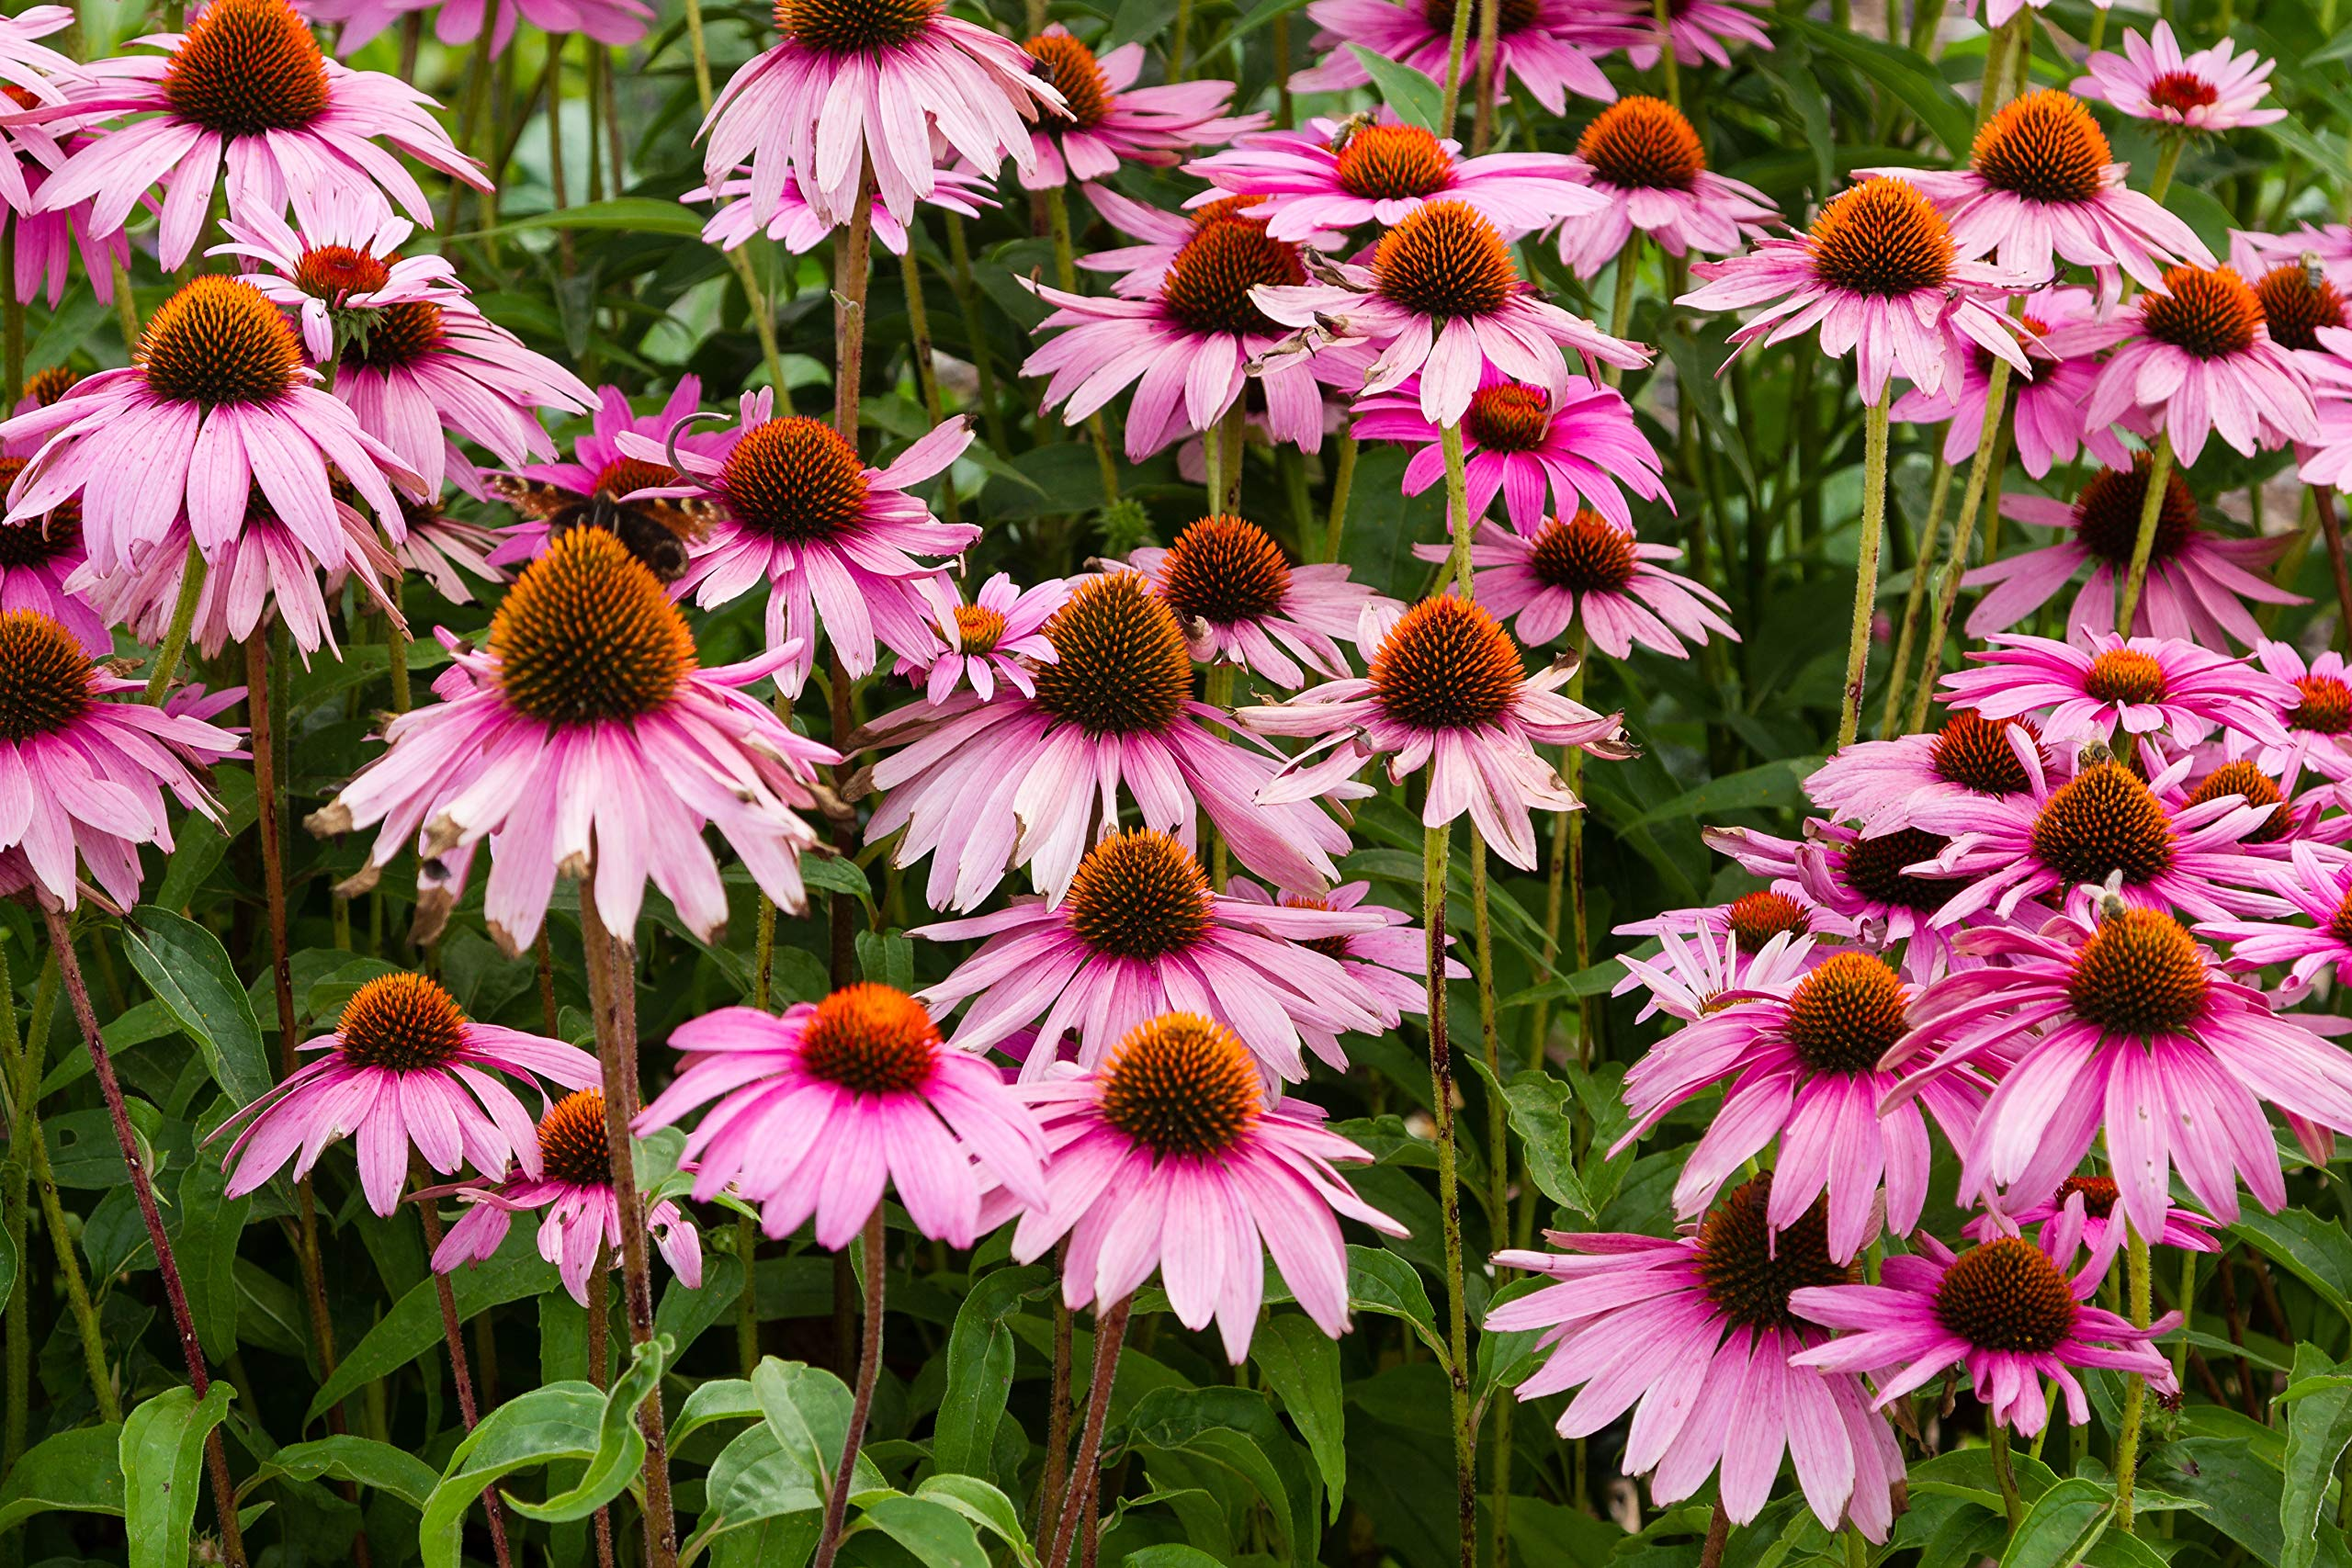 Sweet Yards Seed Co. Purple Coneflower Seeds - Bulk One Pound Packet - Over 50,000 Open Pollinated Non-GMO Wildflower Seeds - Echinacea purpurea